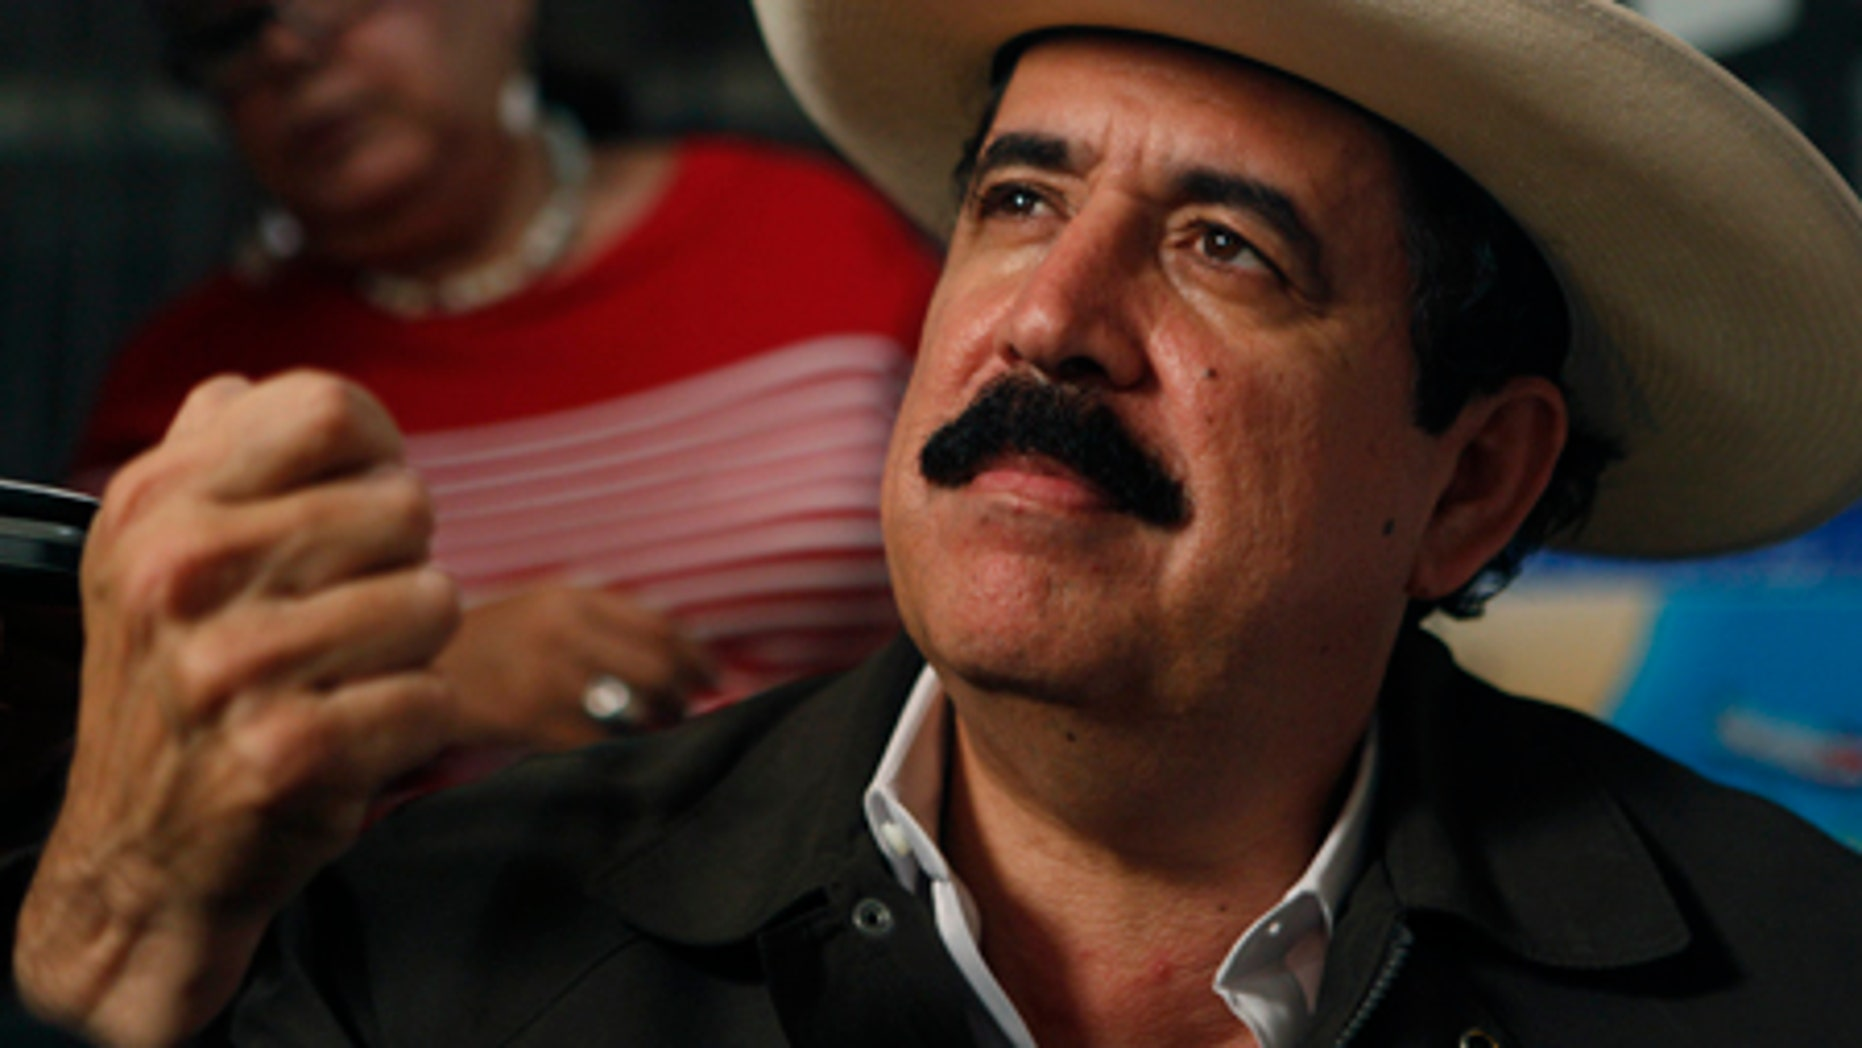 July 17, 2009: Honduras' ousted President Manuel Zelaya answers questions during a news conference in Managua.